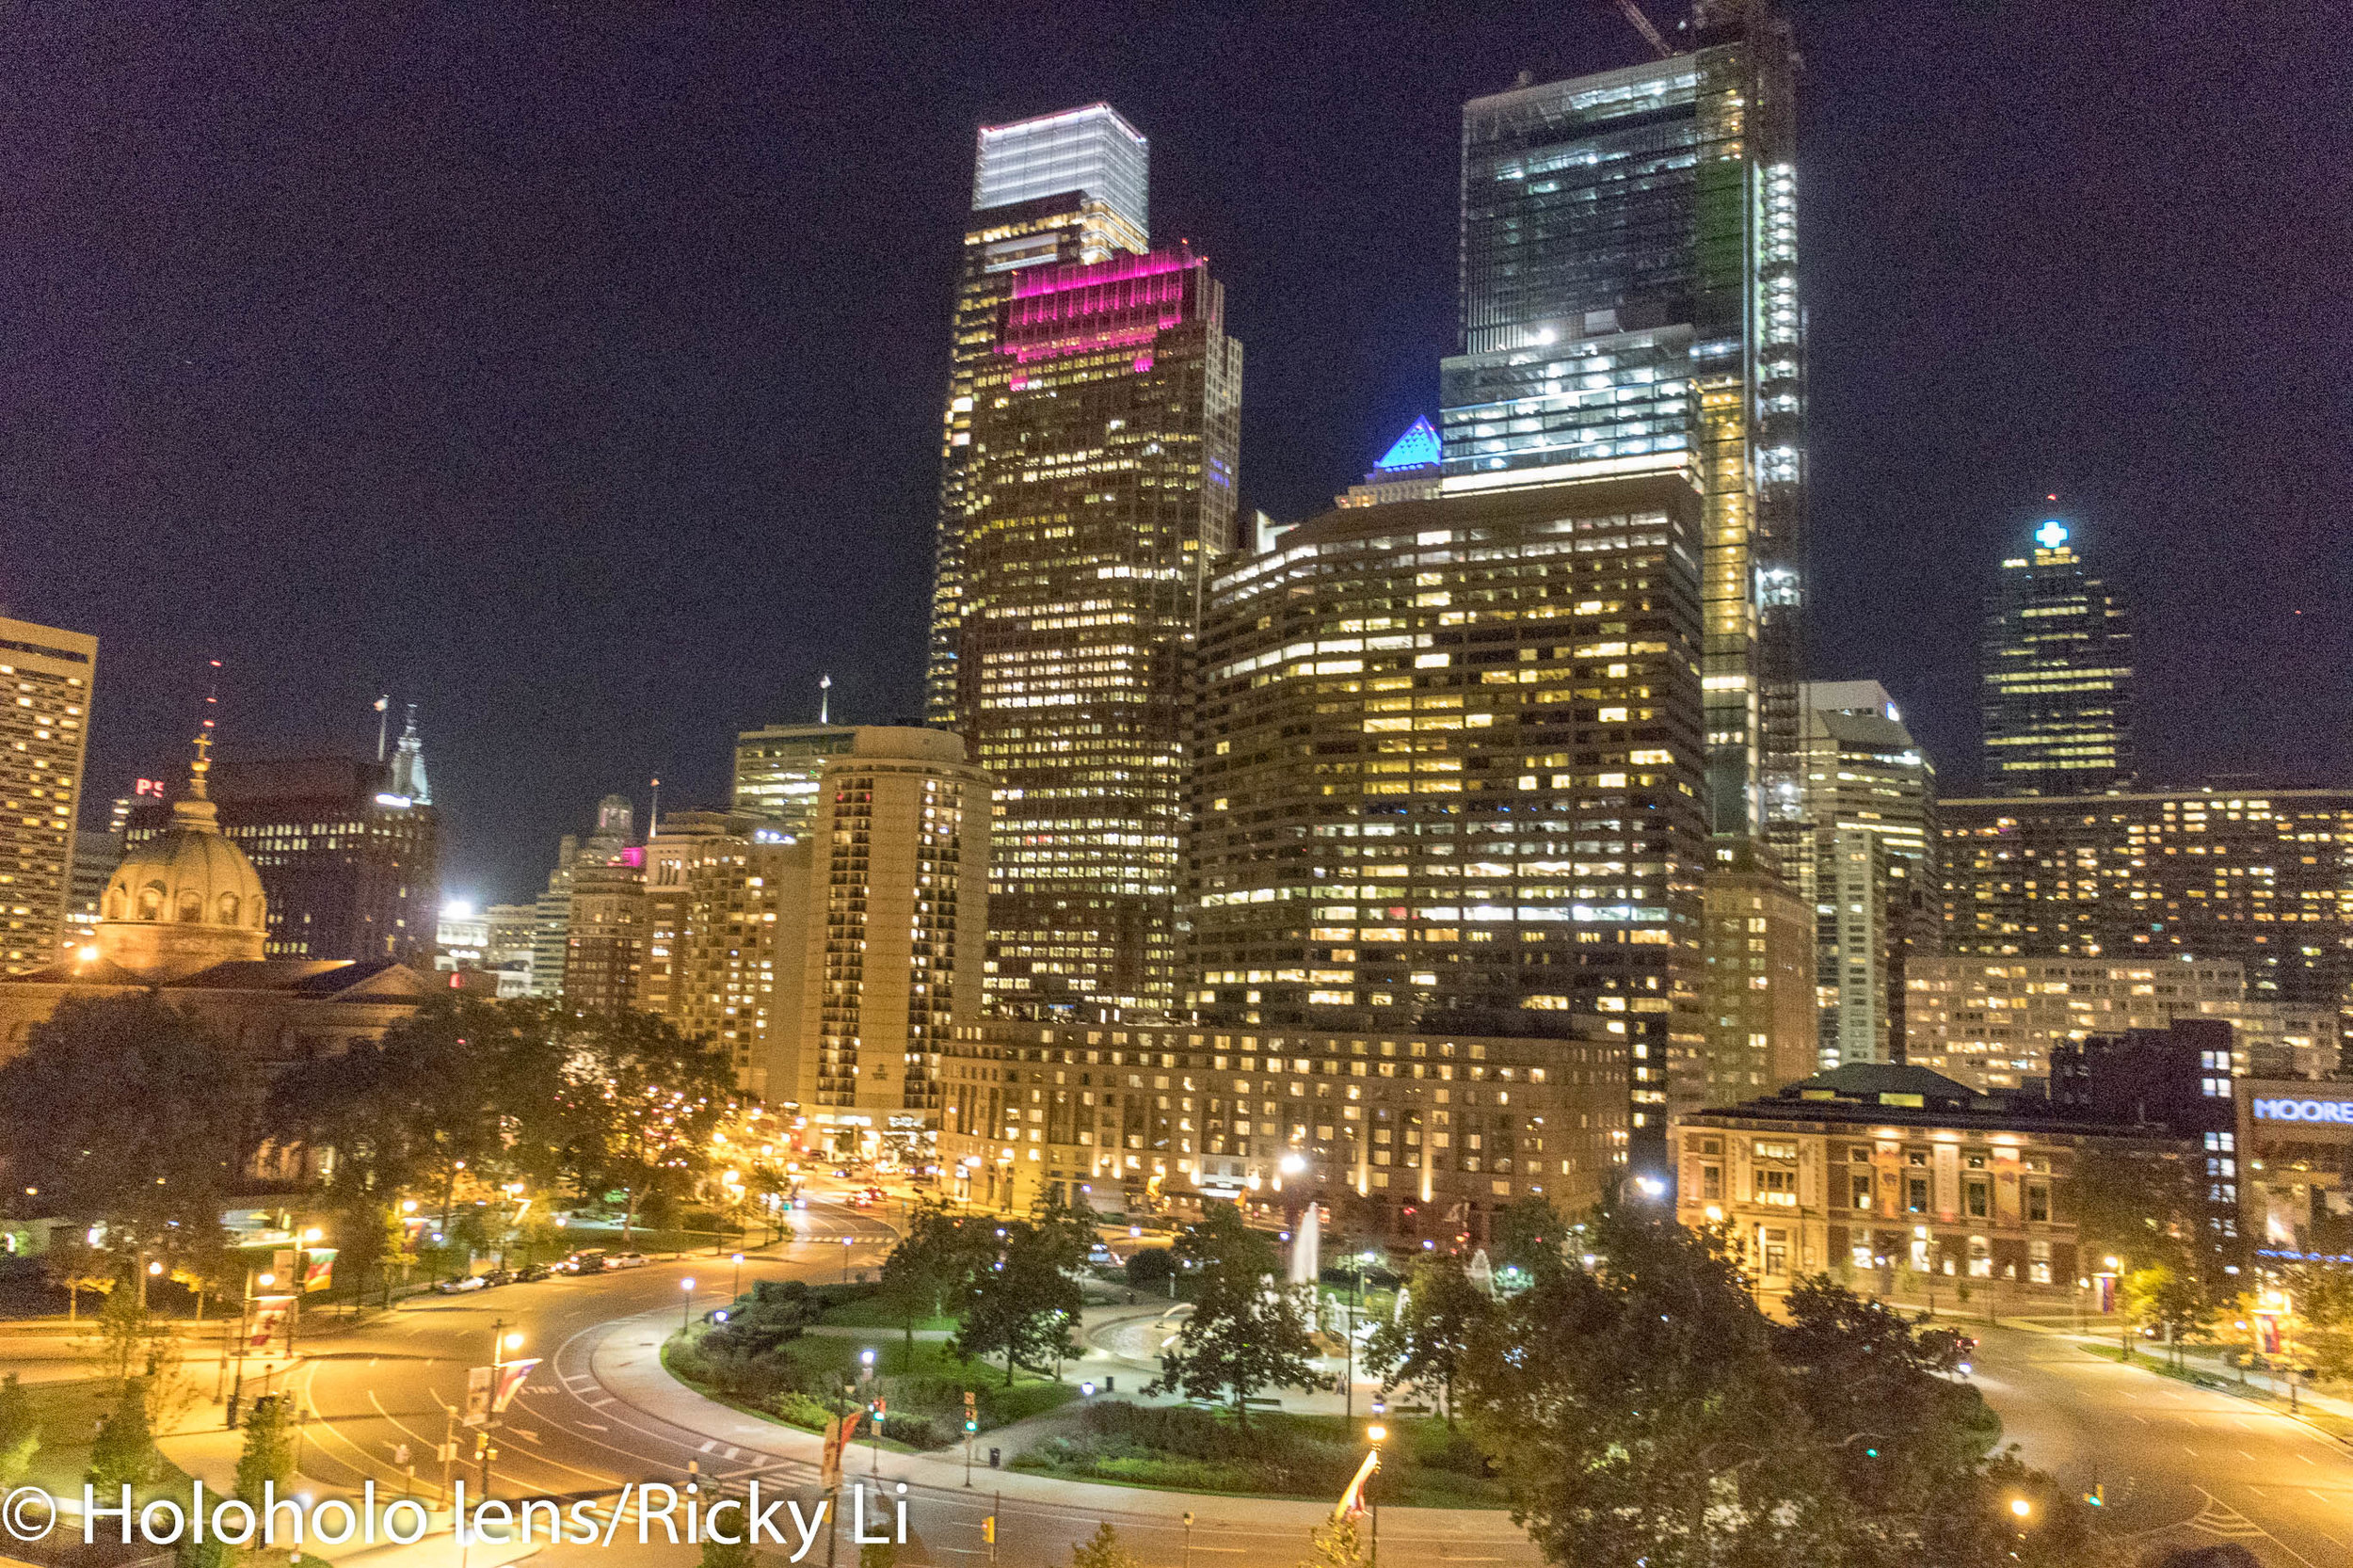 Kristy's time with Holoholo lens in Philadelphia